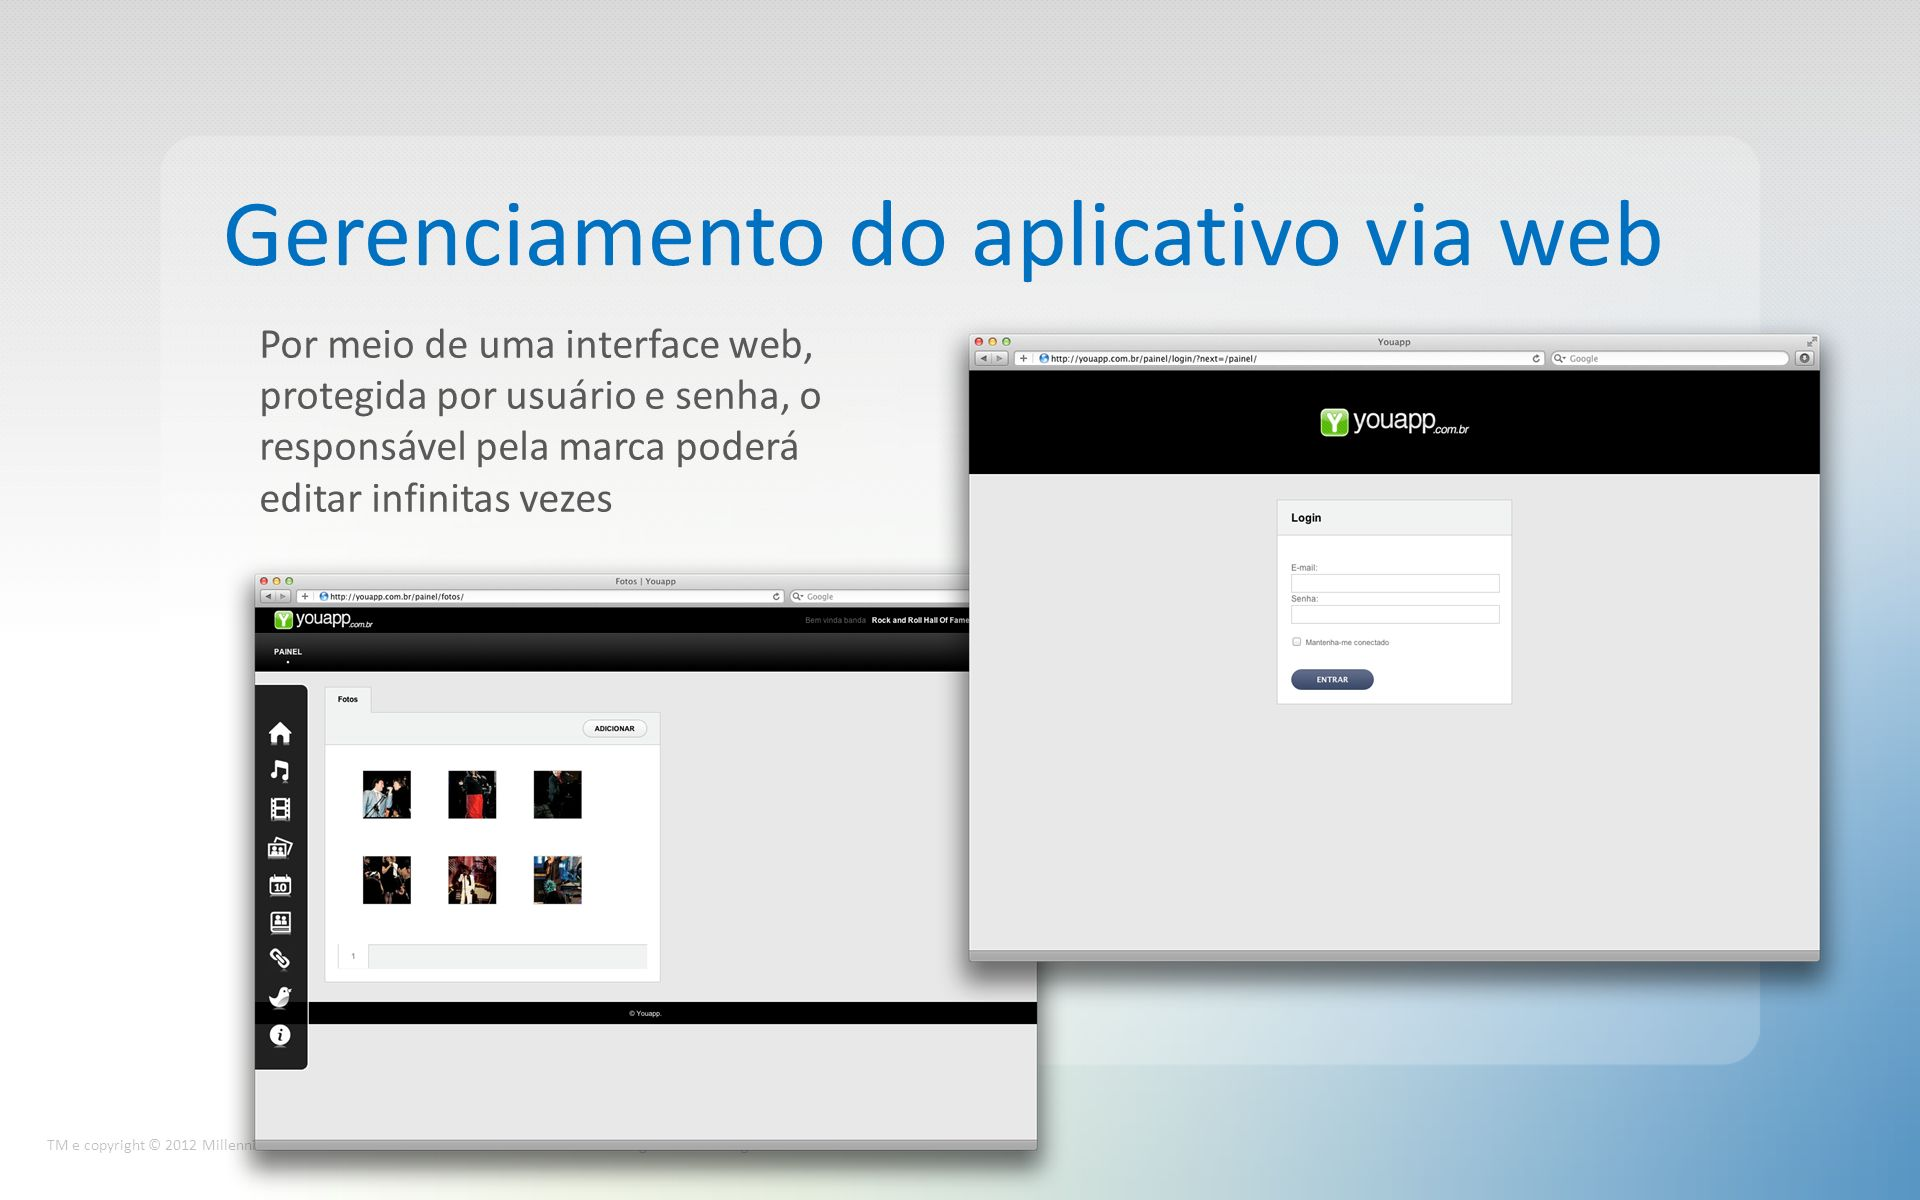 Gerenciamento do aplicativo via web TM e copyright © 2012 Millennium Network.